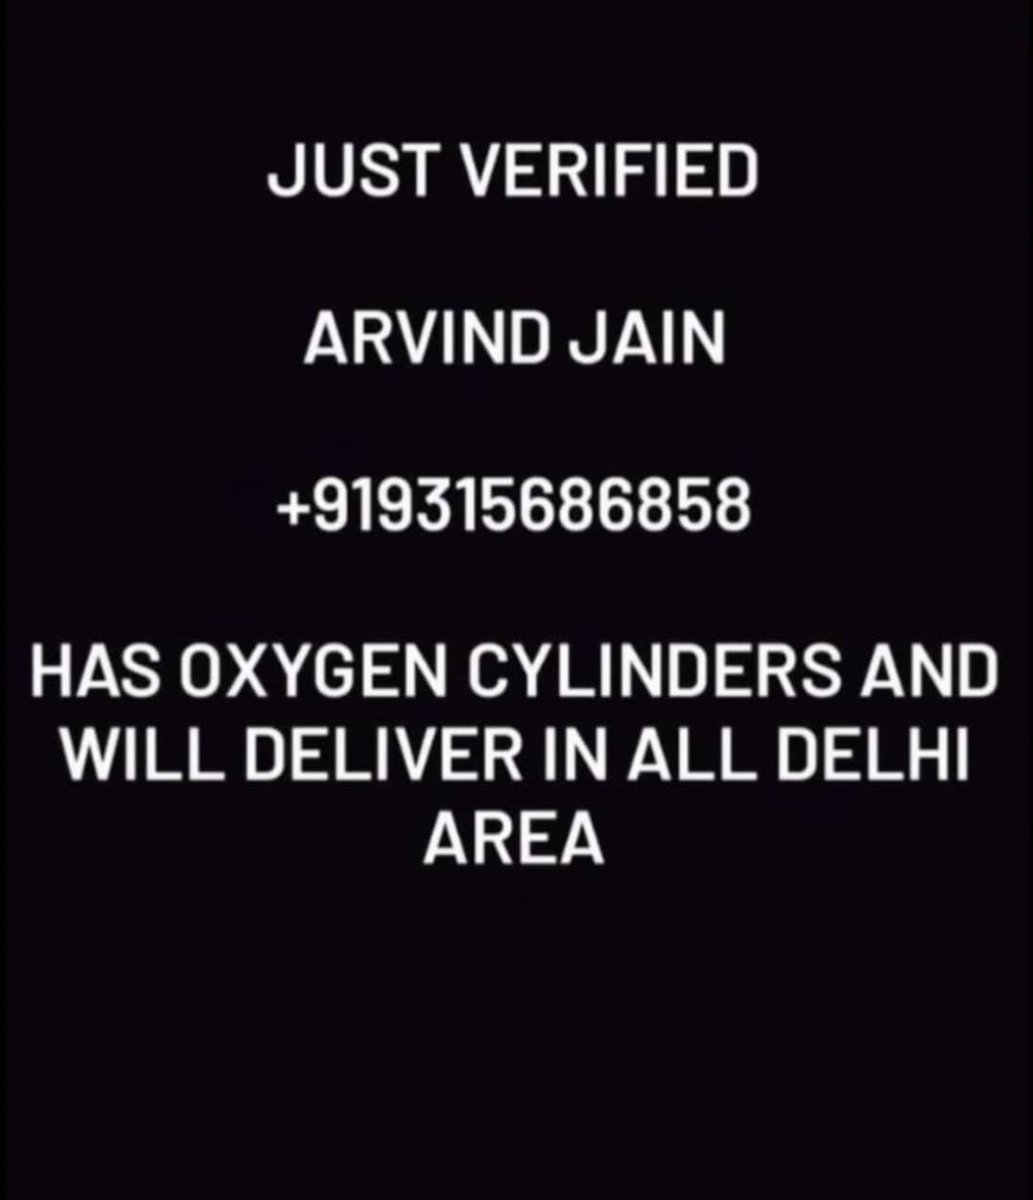 RT @Dikshas_96: Oxygen Cylinder  Delhi https://t.co/0f76eseDIF